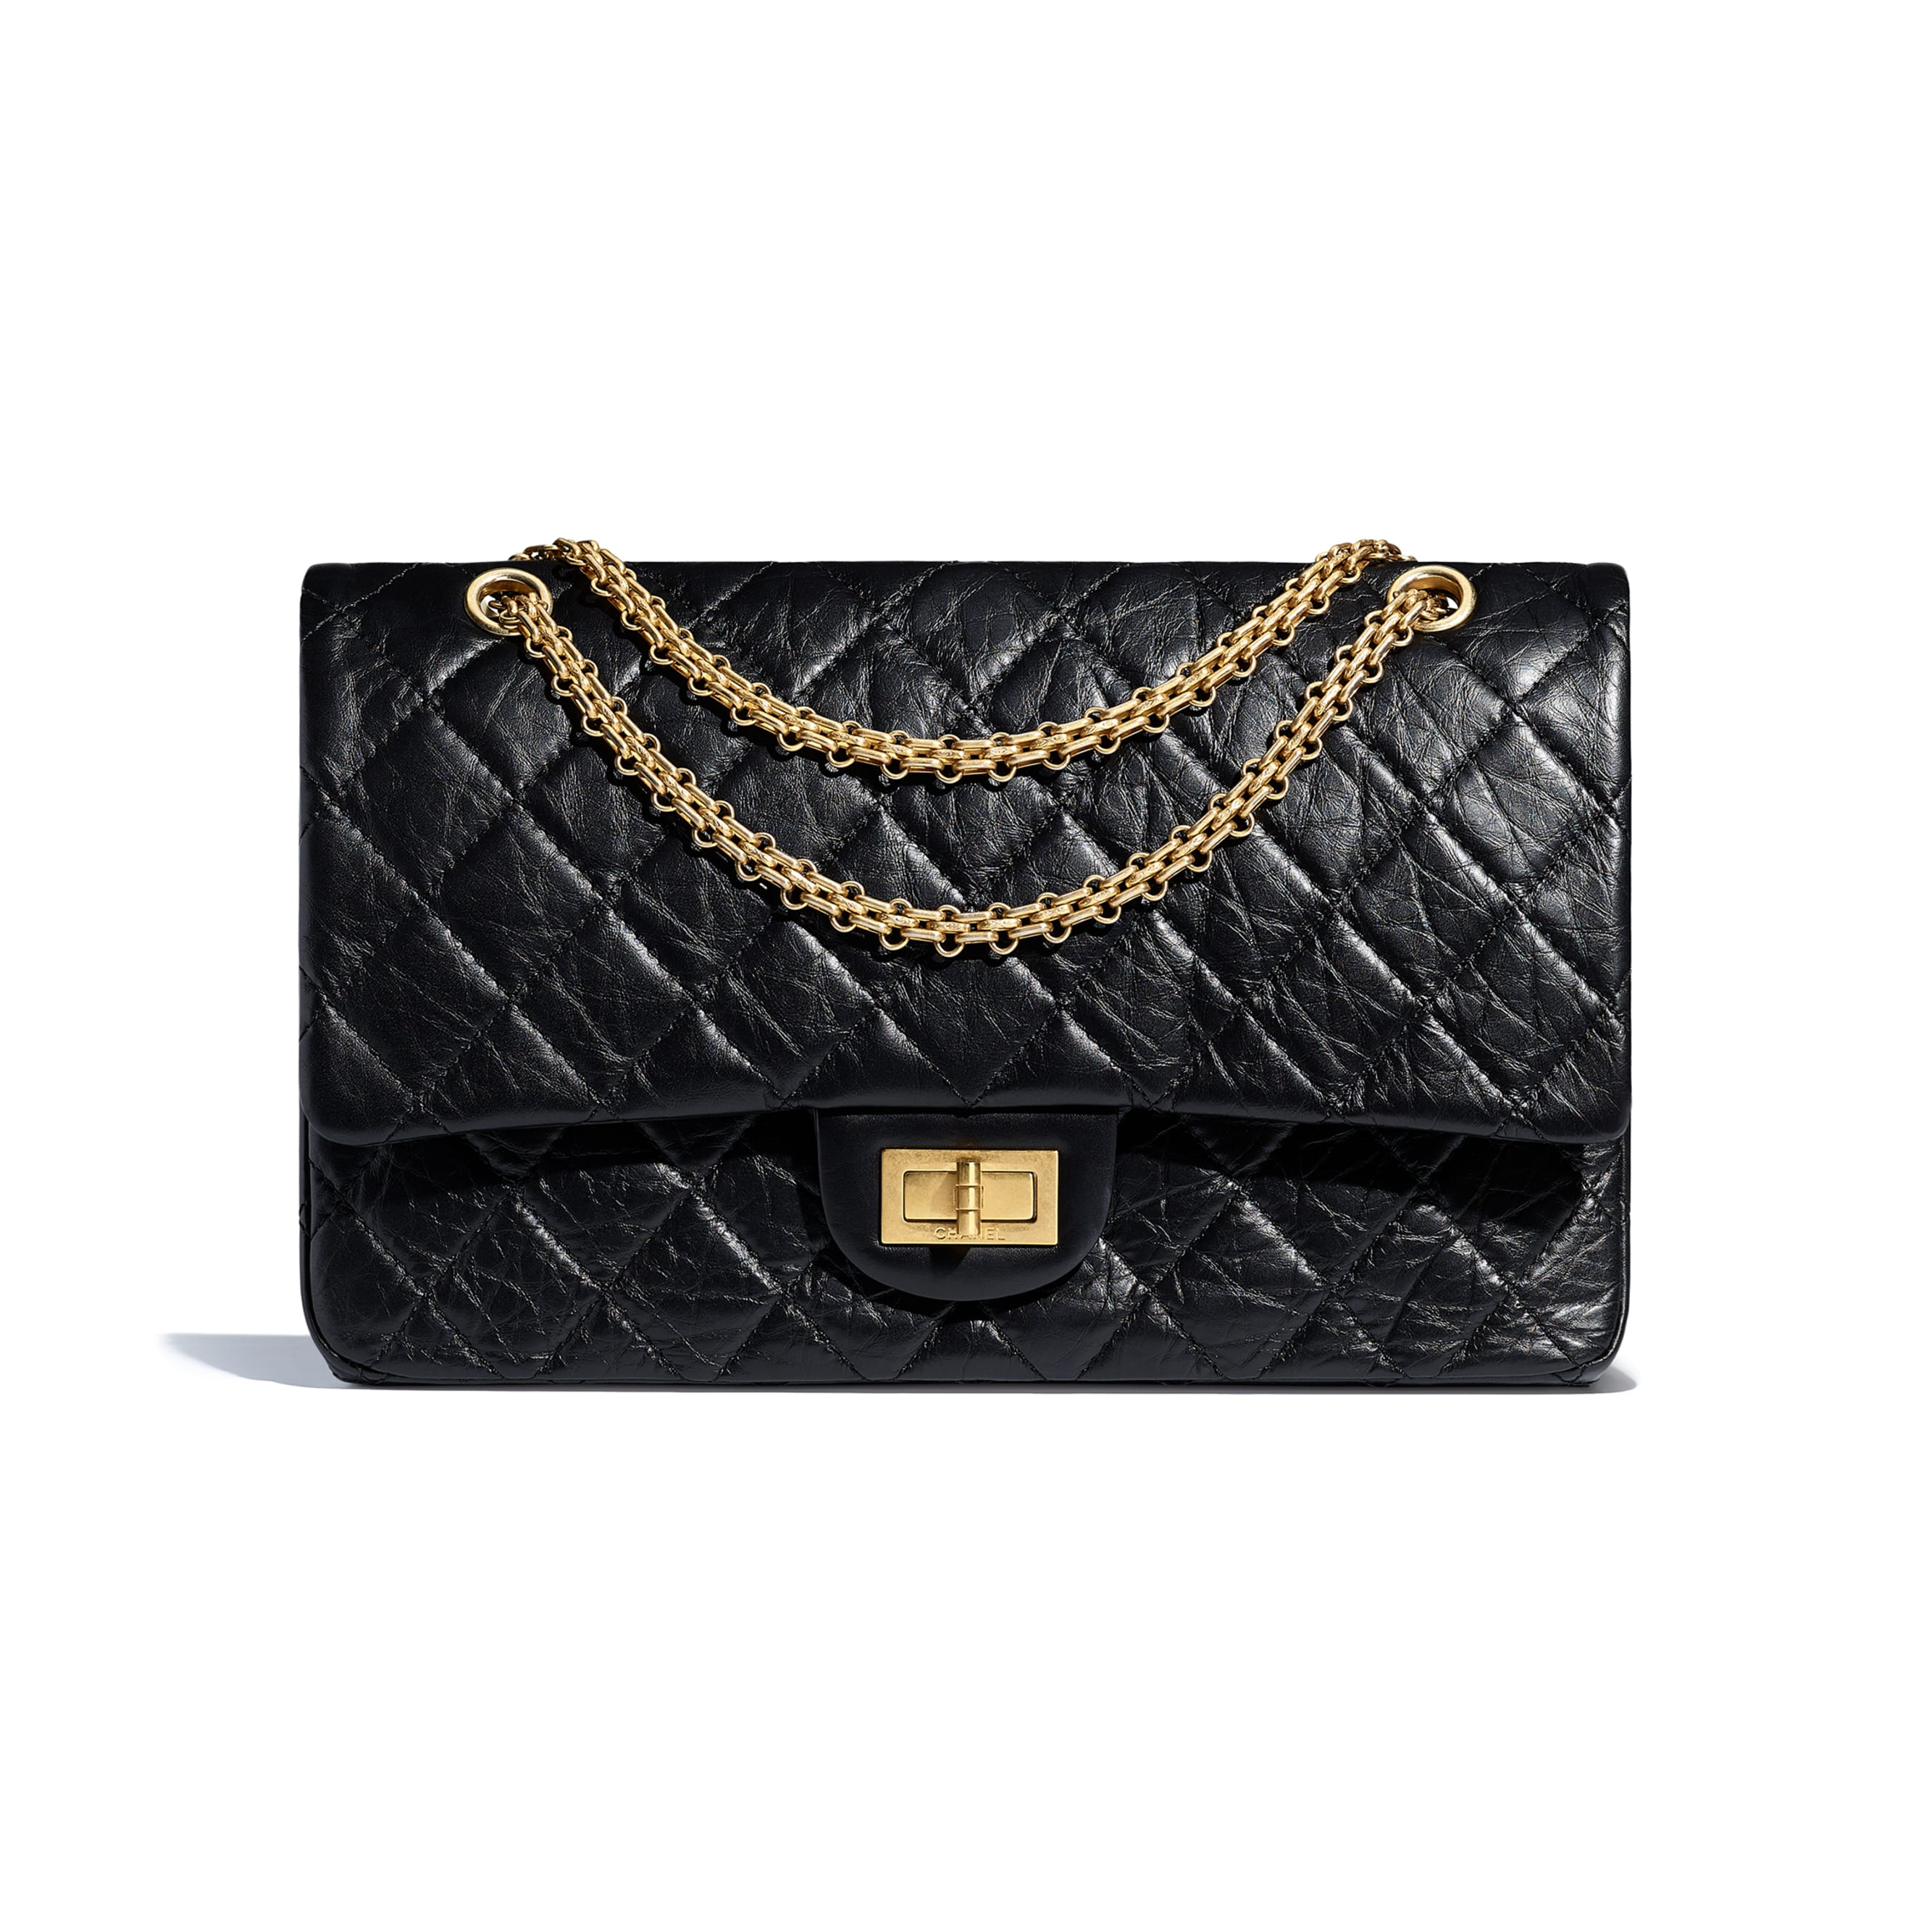 Maxi 2.55 Handbag - Black - Aged Calfskin & Gold-Tone Metal - CHANEL - Default view - see standard sized version